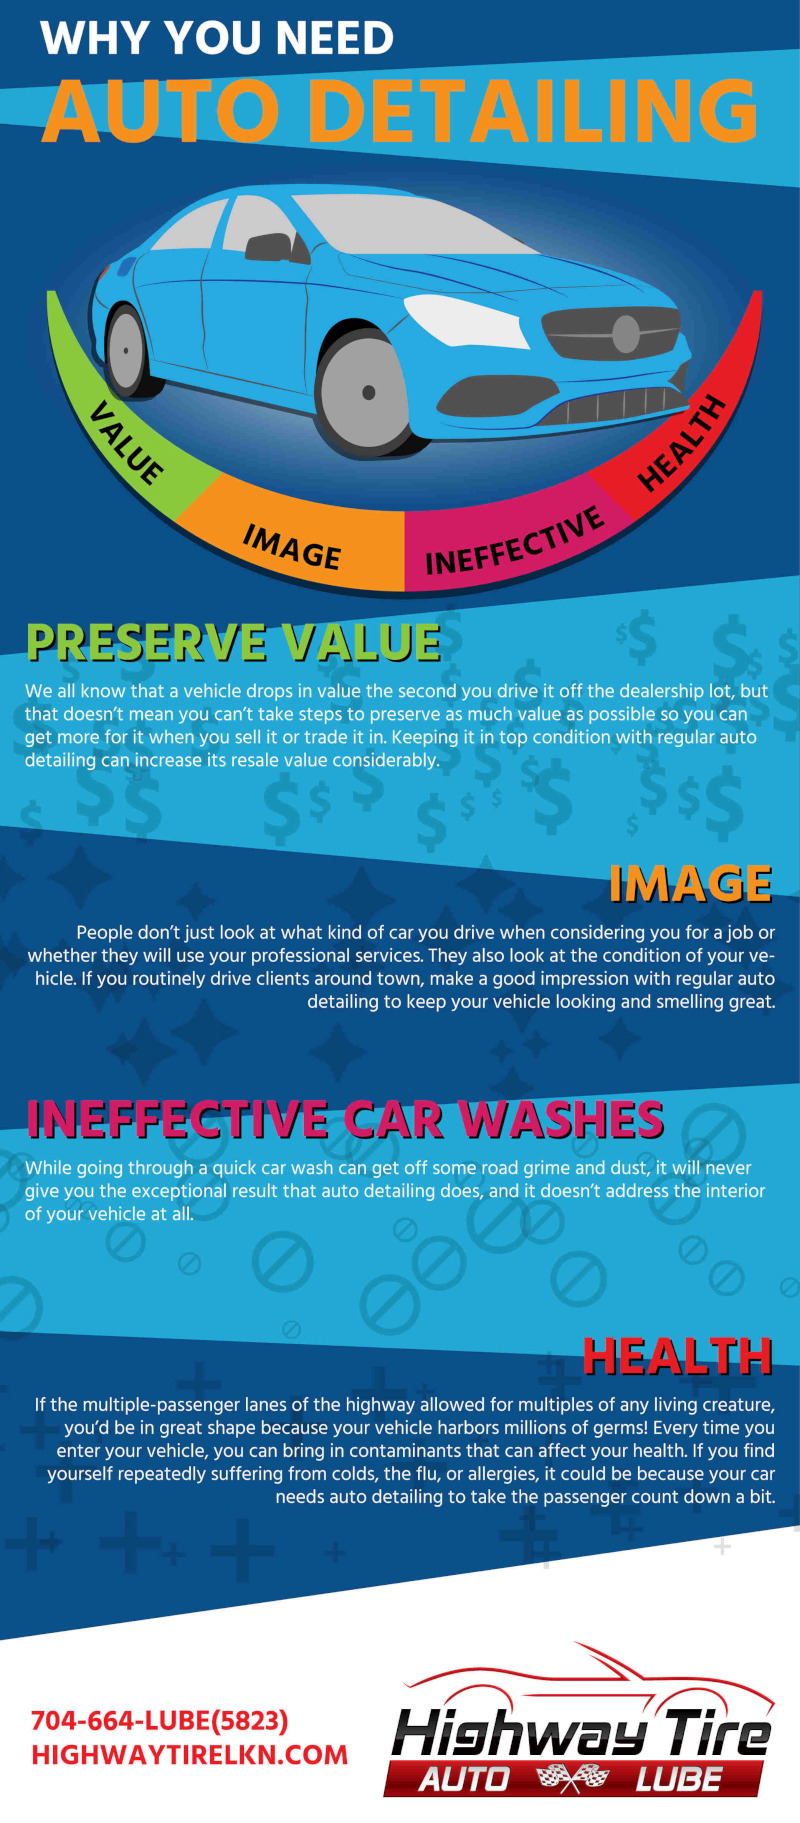 Why You Need Auto Detailing [infographic]